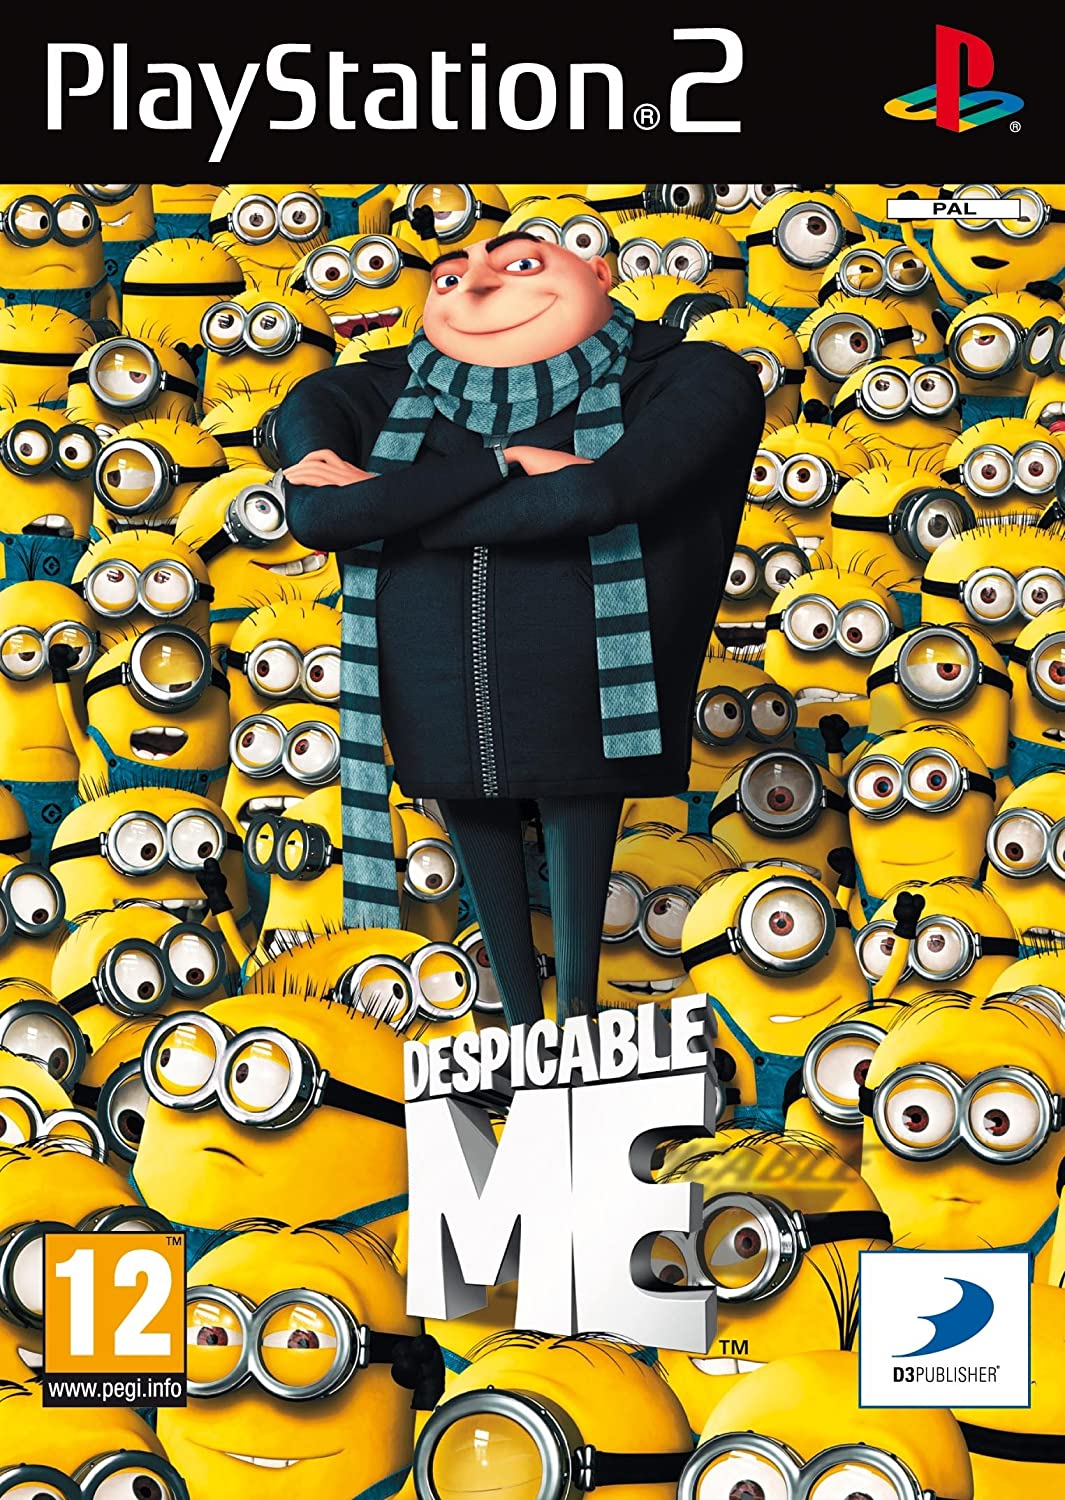 Despicable Me Xbox Ps3 Ps4 Pc jtag rgh dvd iso Xbox360 Wii Nintendo Mac Linux